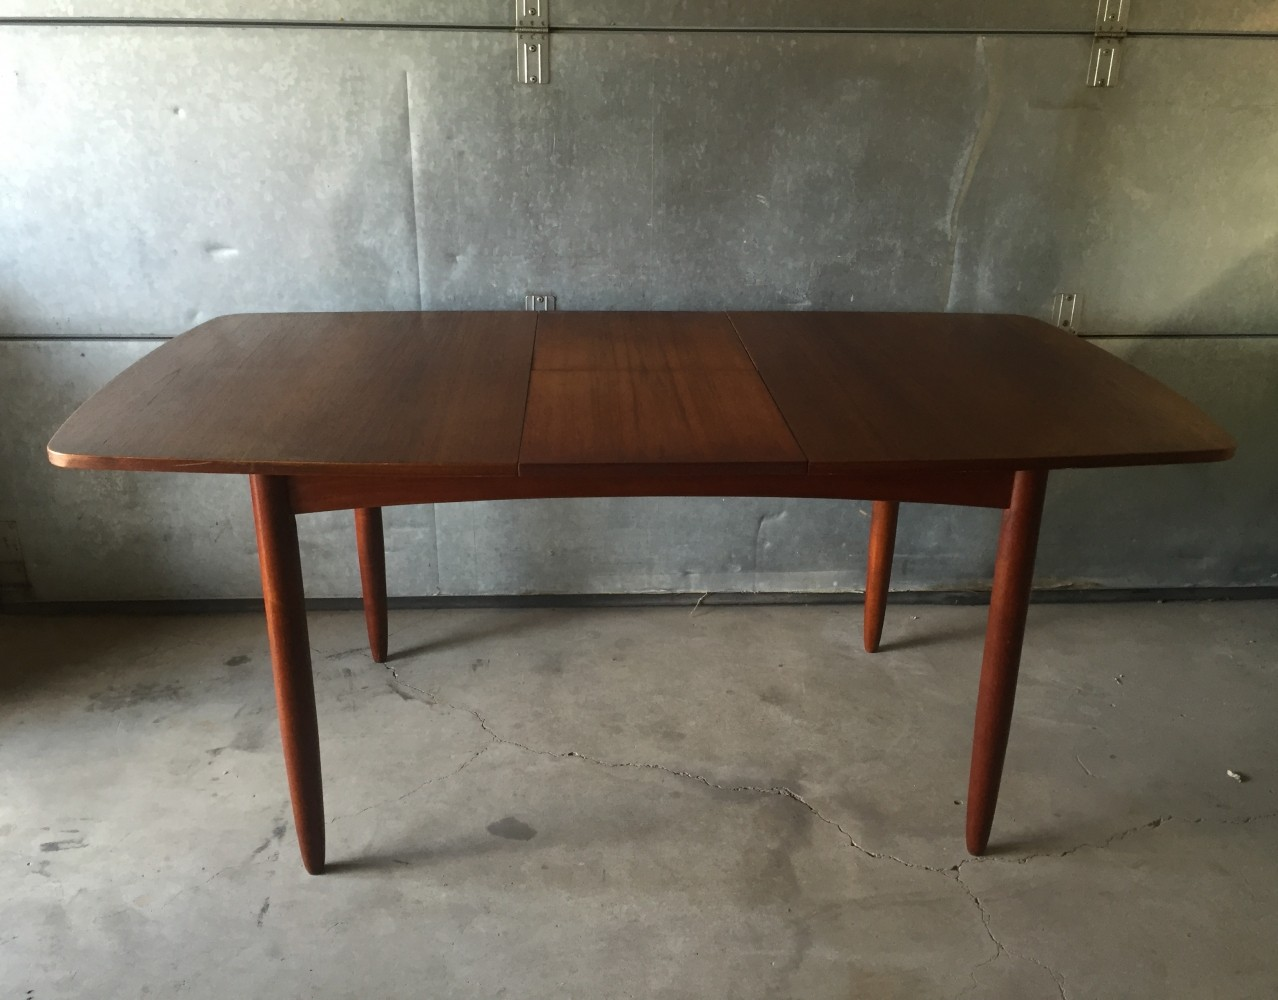 Extendable dining table by Louis van Teeffelen for Wb 1960s